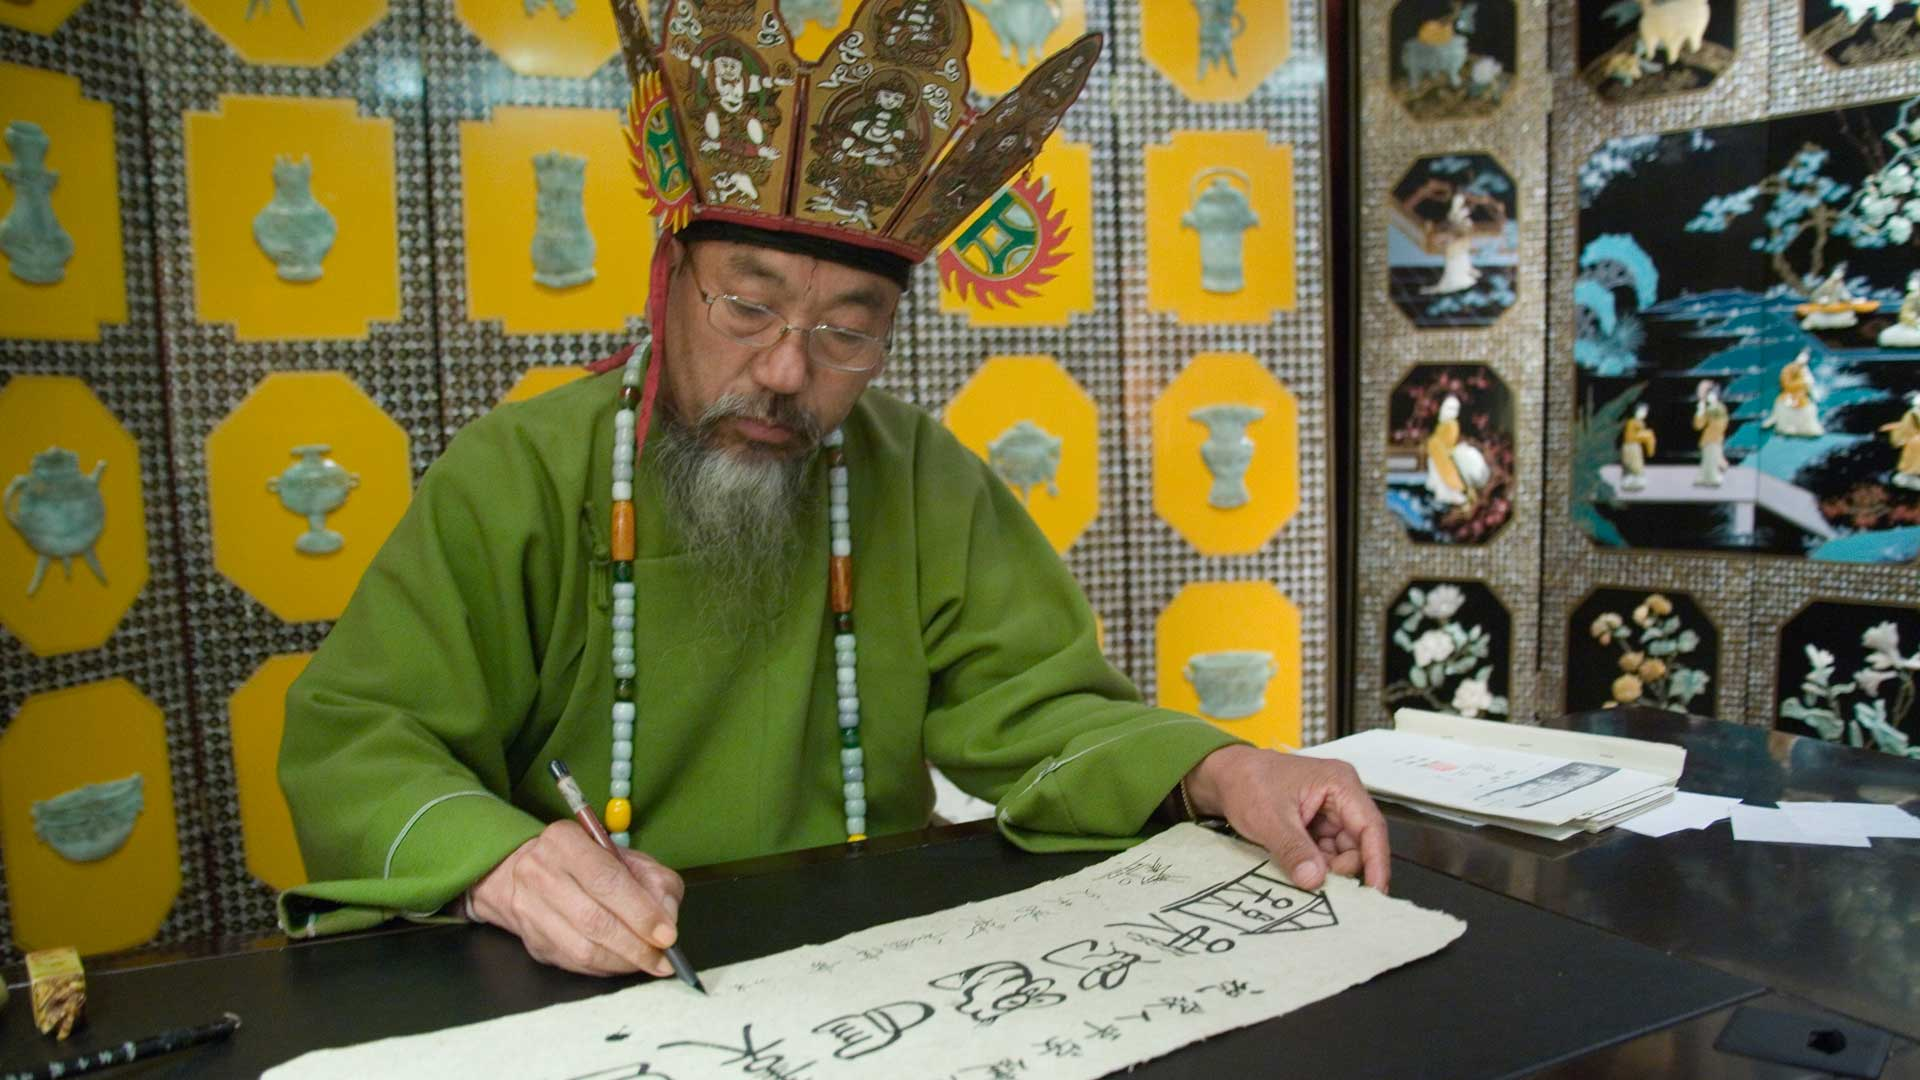 Classic Naxi calligrapher and pictogram scholar in Yunnan, China with GeoEx